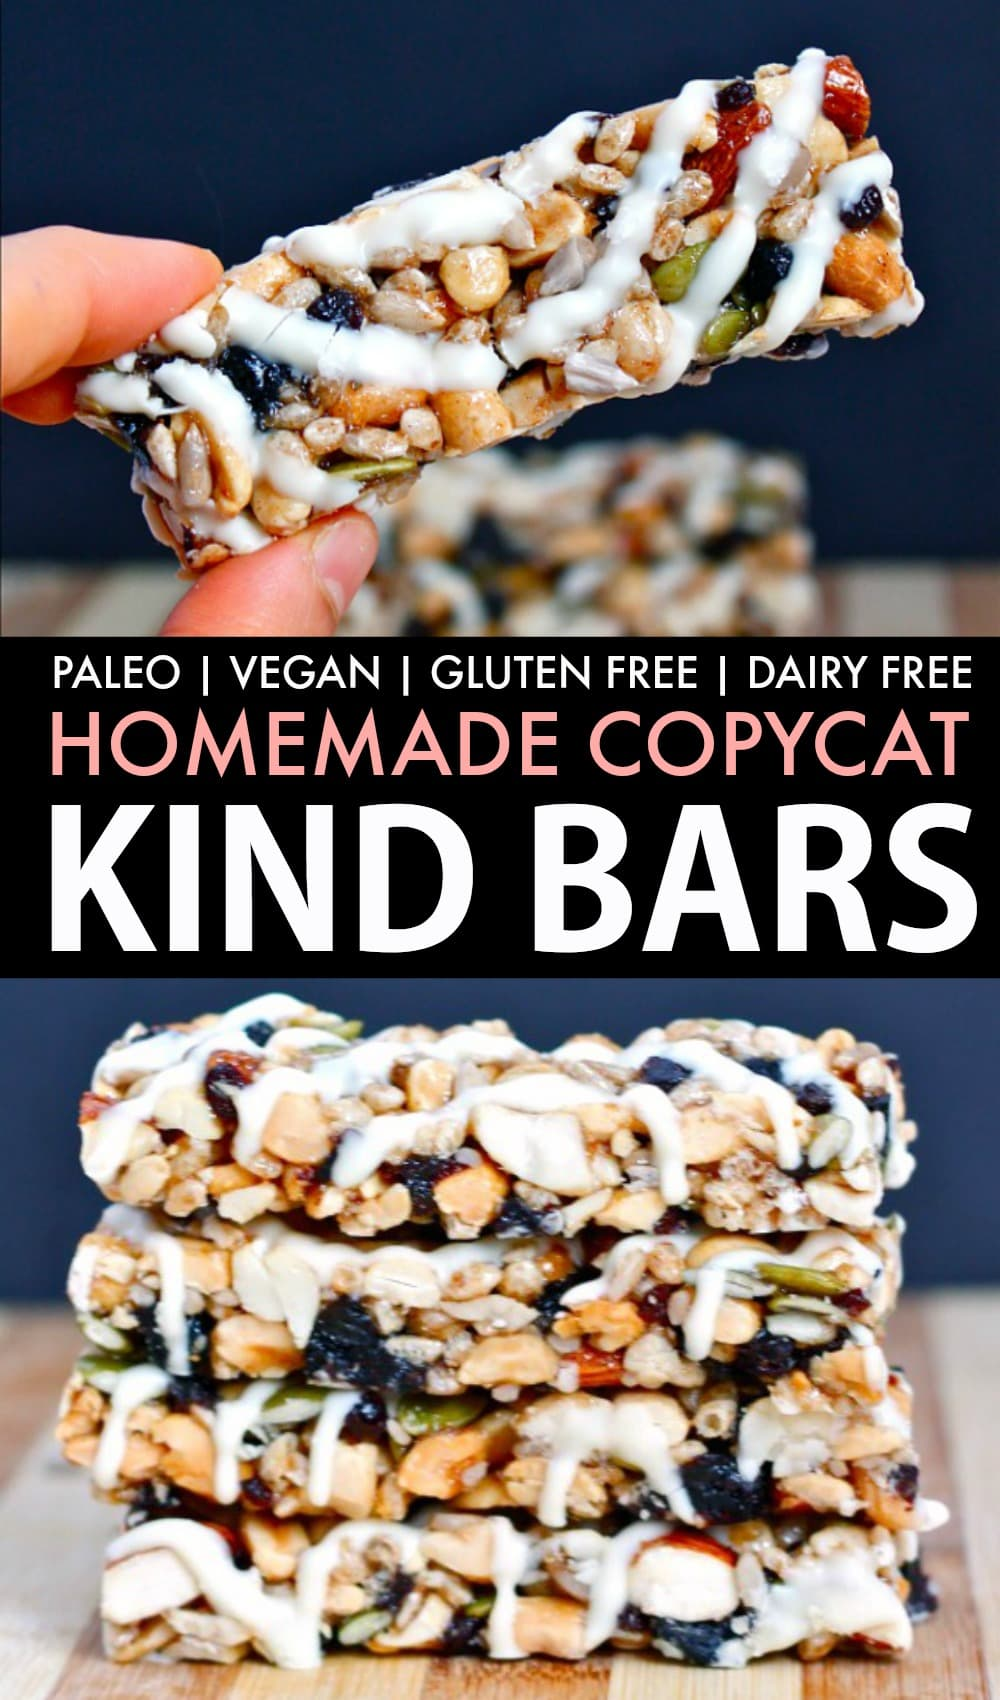 Homemade Fruit and Nut Bars Recipe which tastes like a KIND Bar